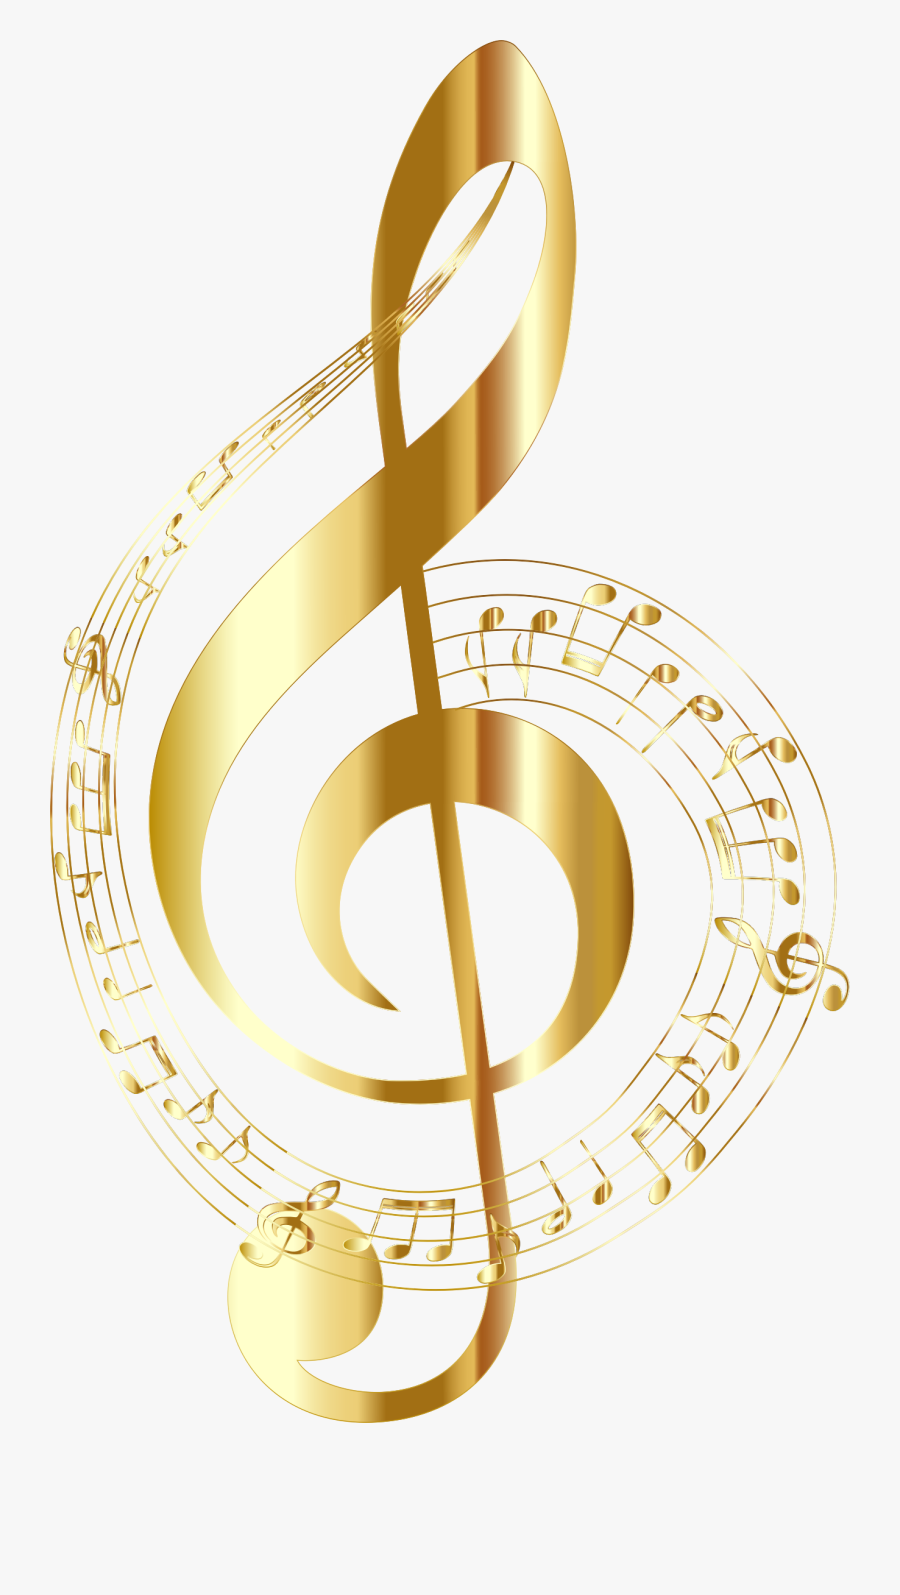 Image Result For Music Note - Gold Music Notes Transparent Background, Transparent Clipart